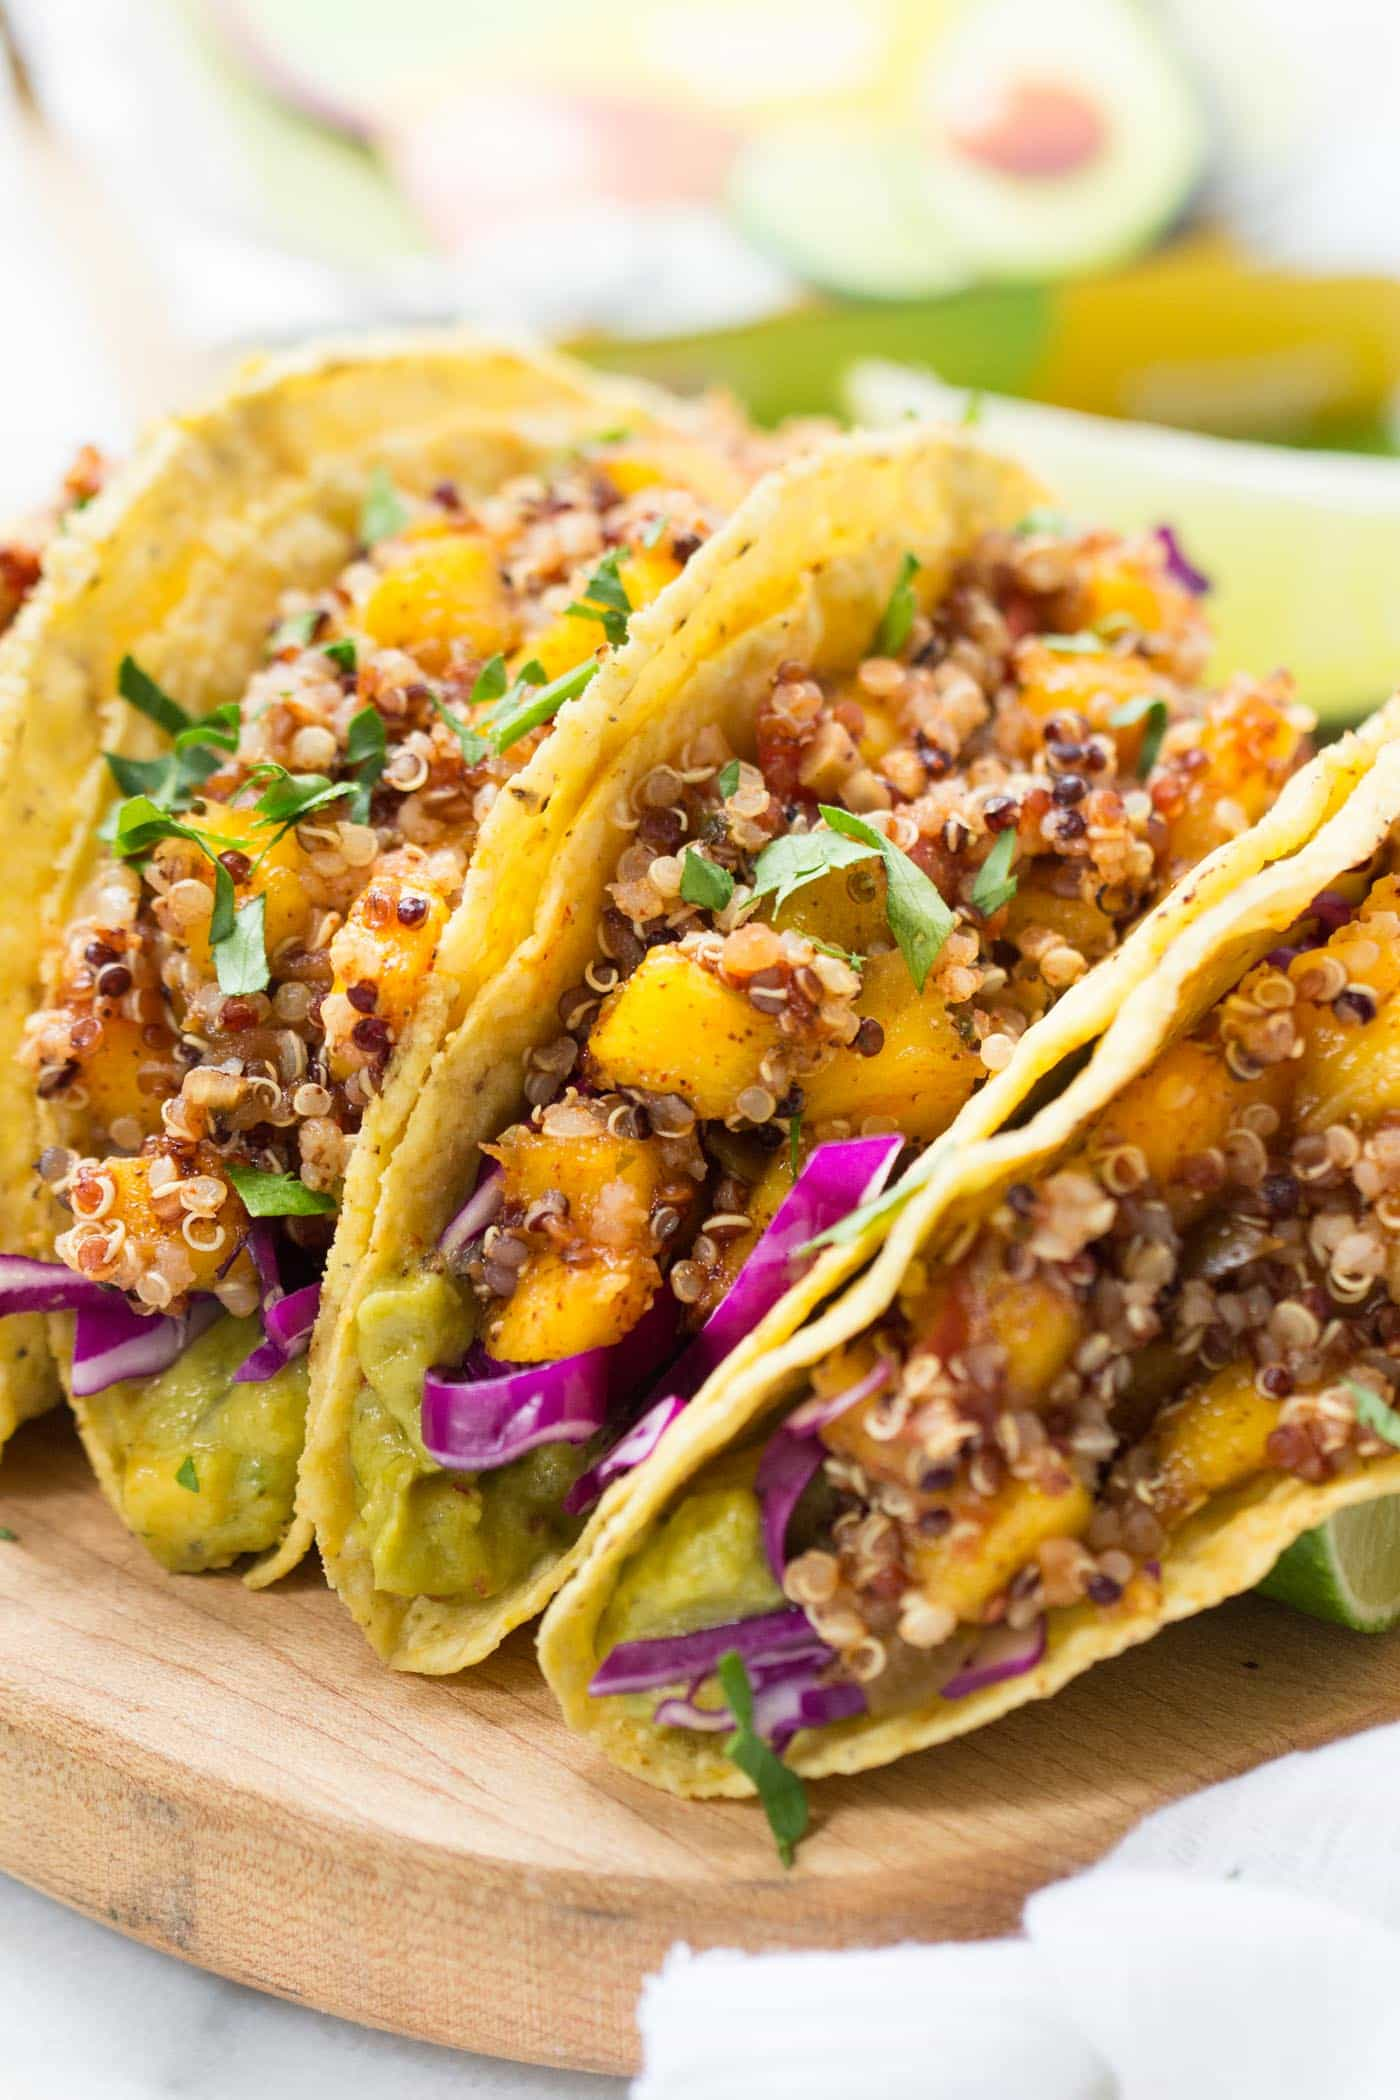 These simple Quinoa Tacos are made with a spicy mango-lime filling and use a creamy guacamole spread on the bottom!